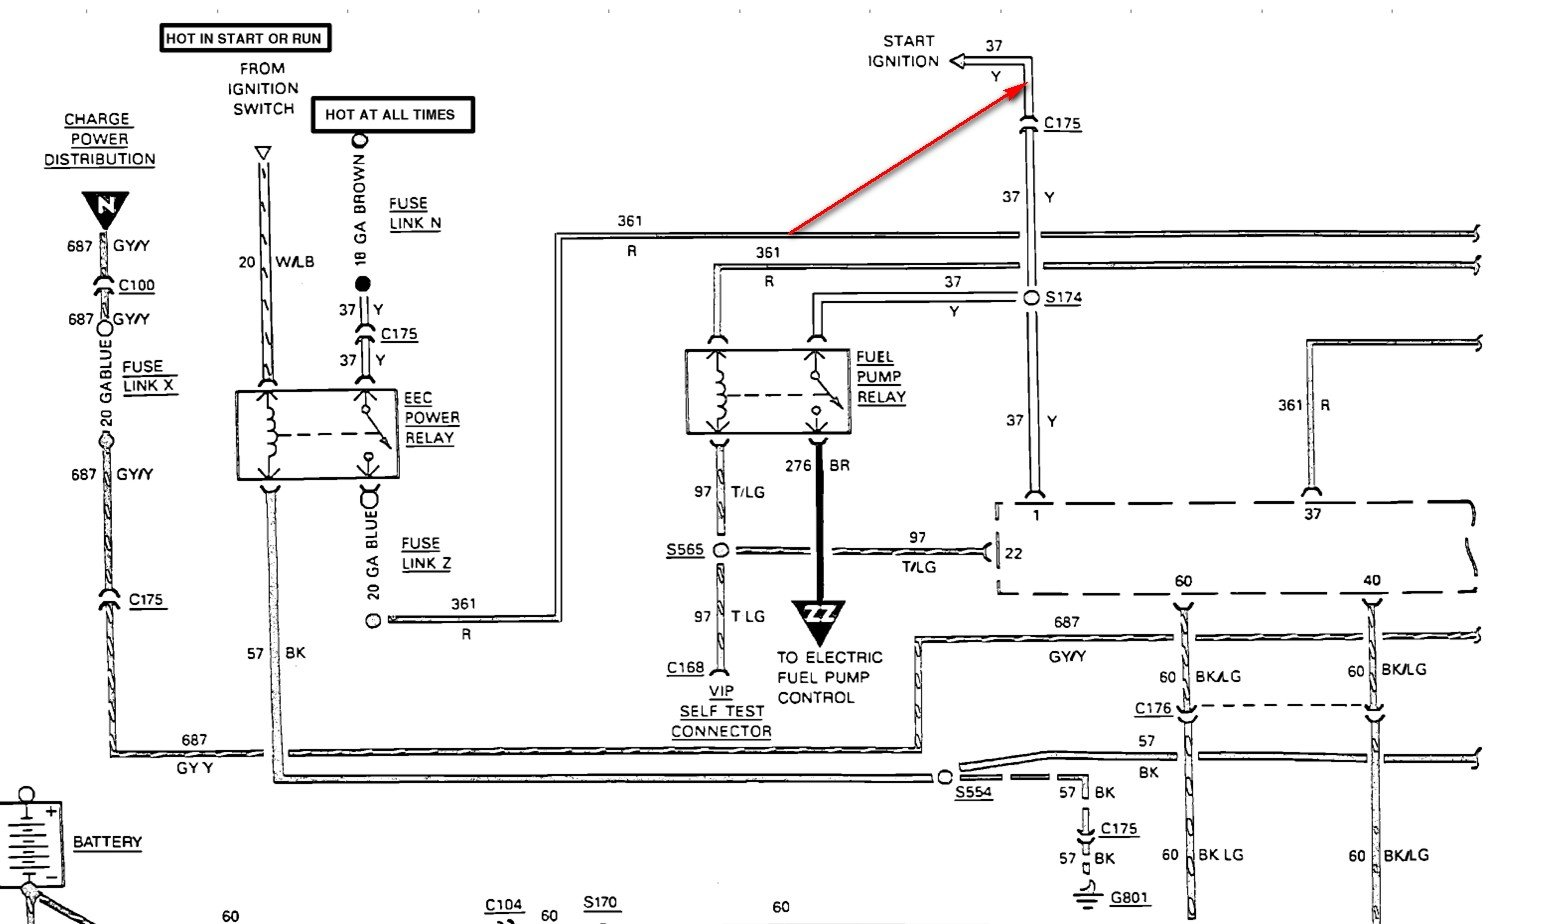 1988 ford f150 ignition wiring diagram 1988 image 1988 f150 fuel gauge wiring diagram 1988 auto wiring diagram on 1988 ford f150 ignition wiring